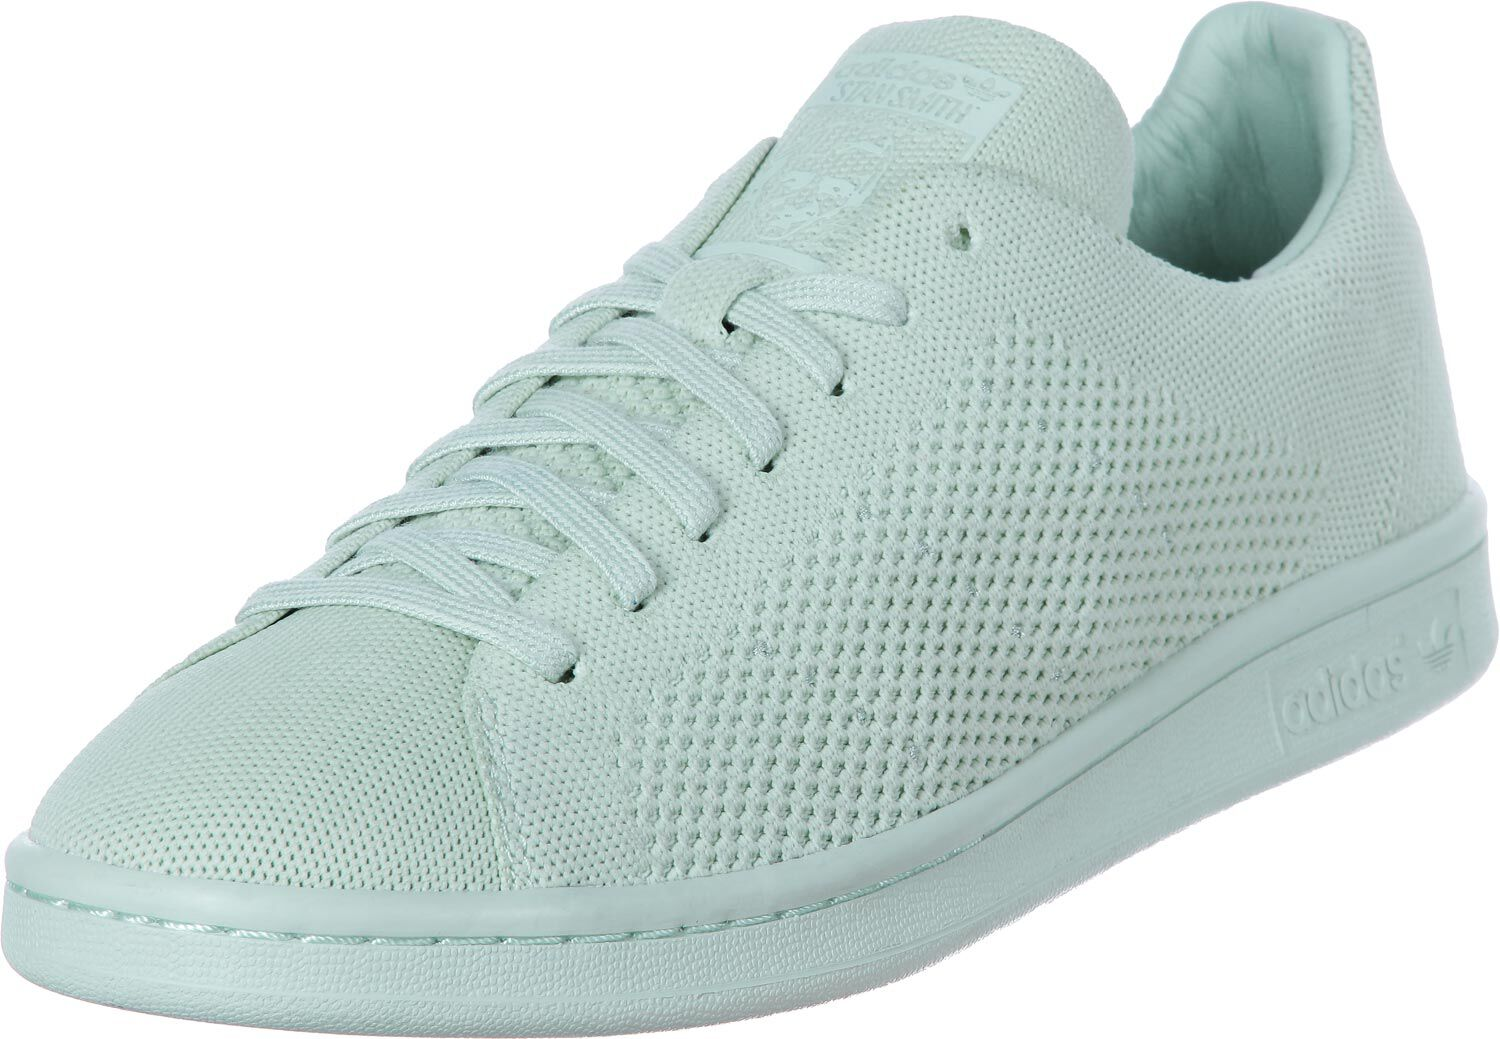 adidas Stan Smith PK - Sneakers Low at